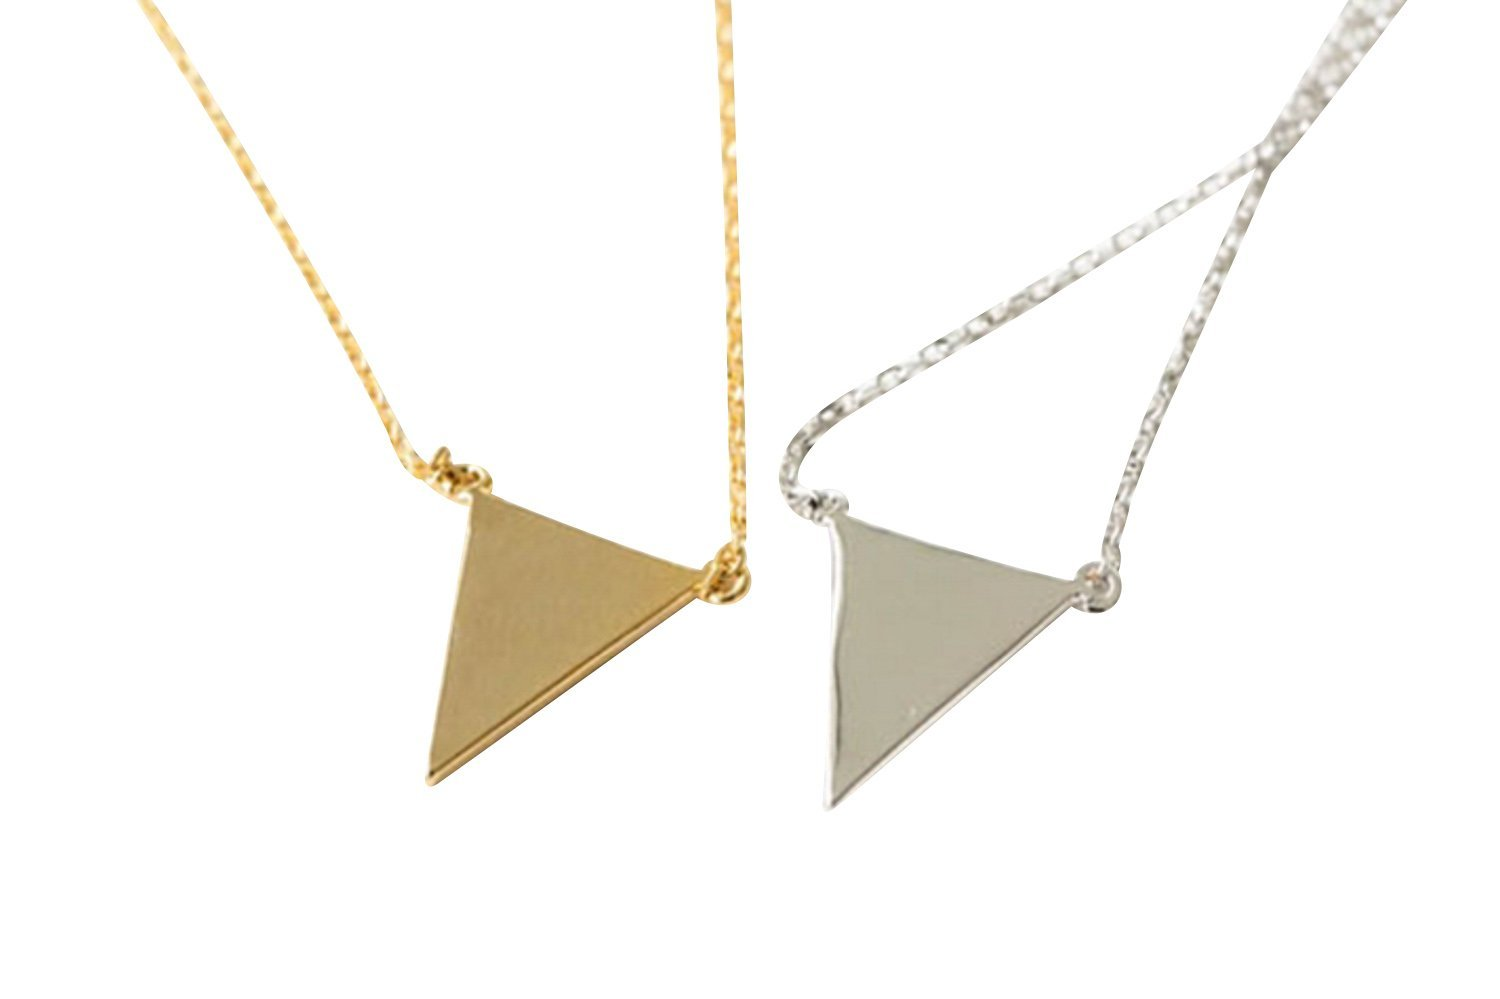 Upside Down Triangle Necklace-mo , triangle jewelry, triangle necklace, triangle shape jewelry, triangle shape necklace, triangle jewellry, geometric